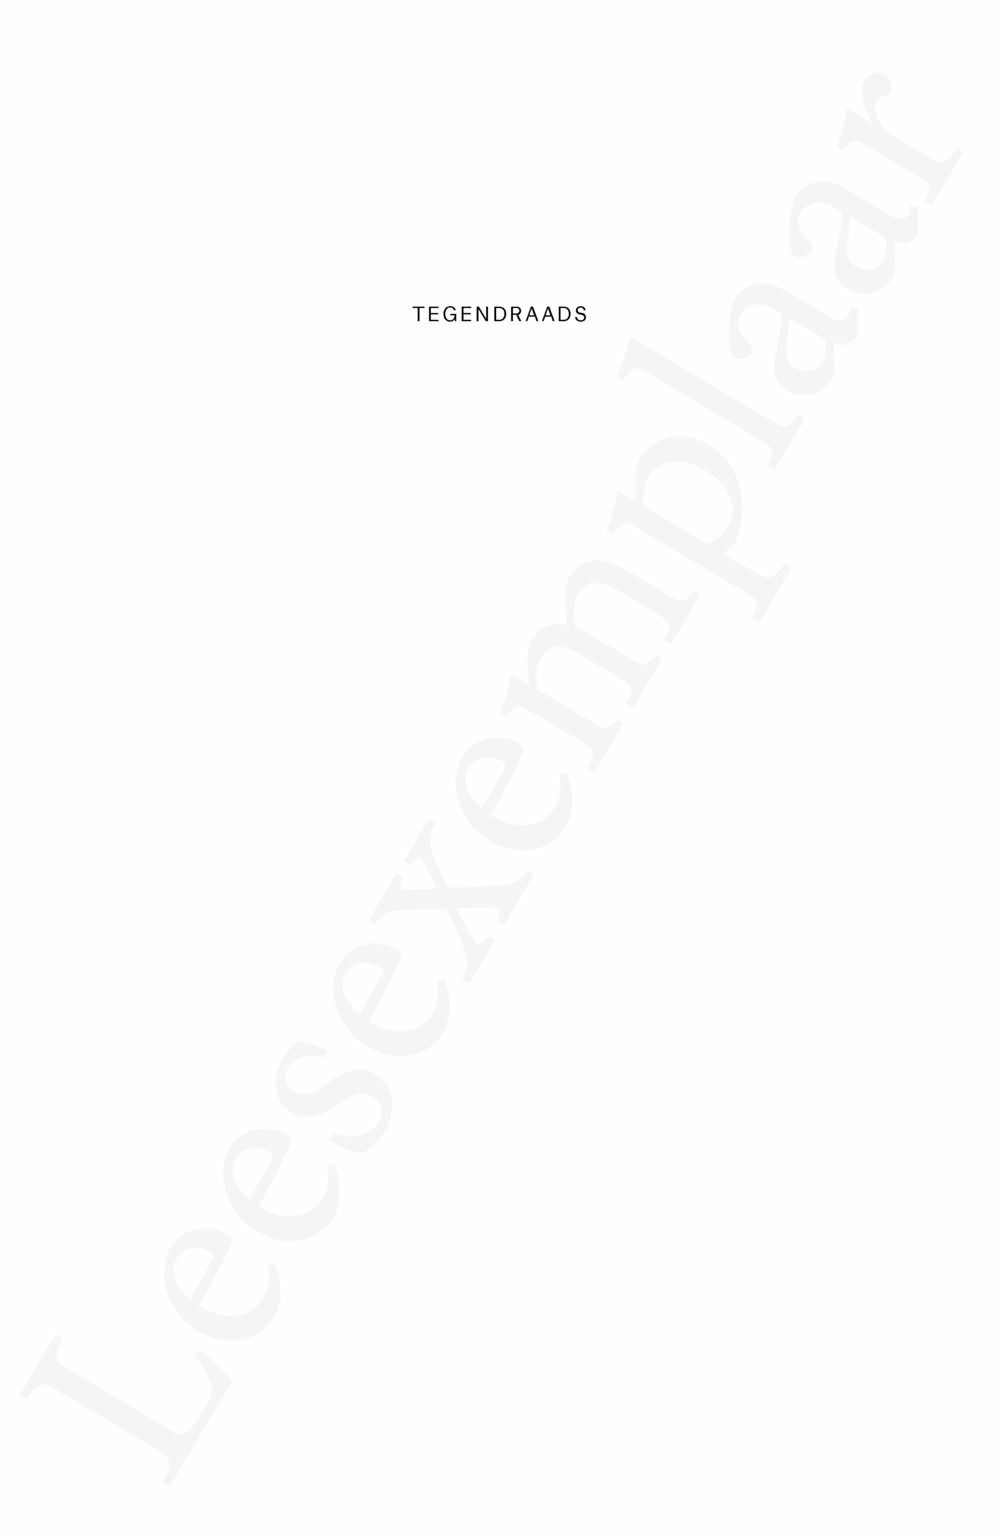 Preview: Tegendraads